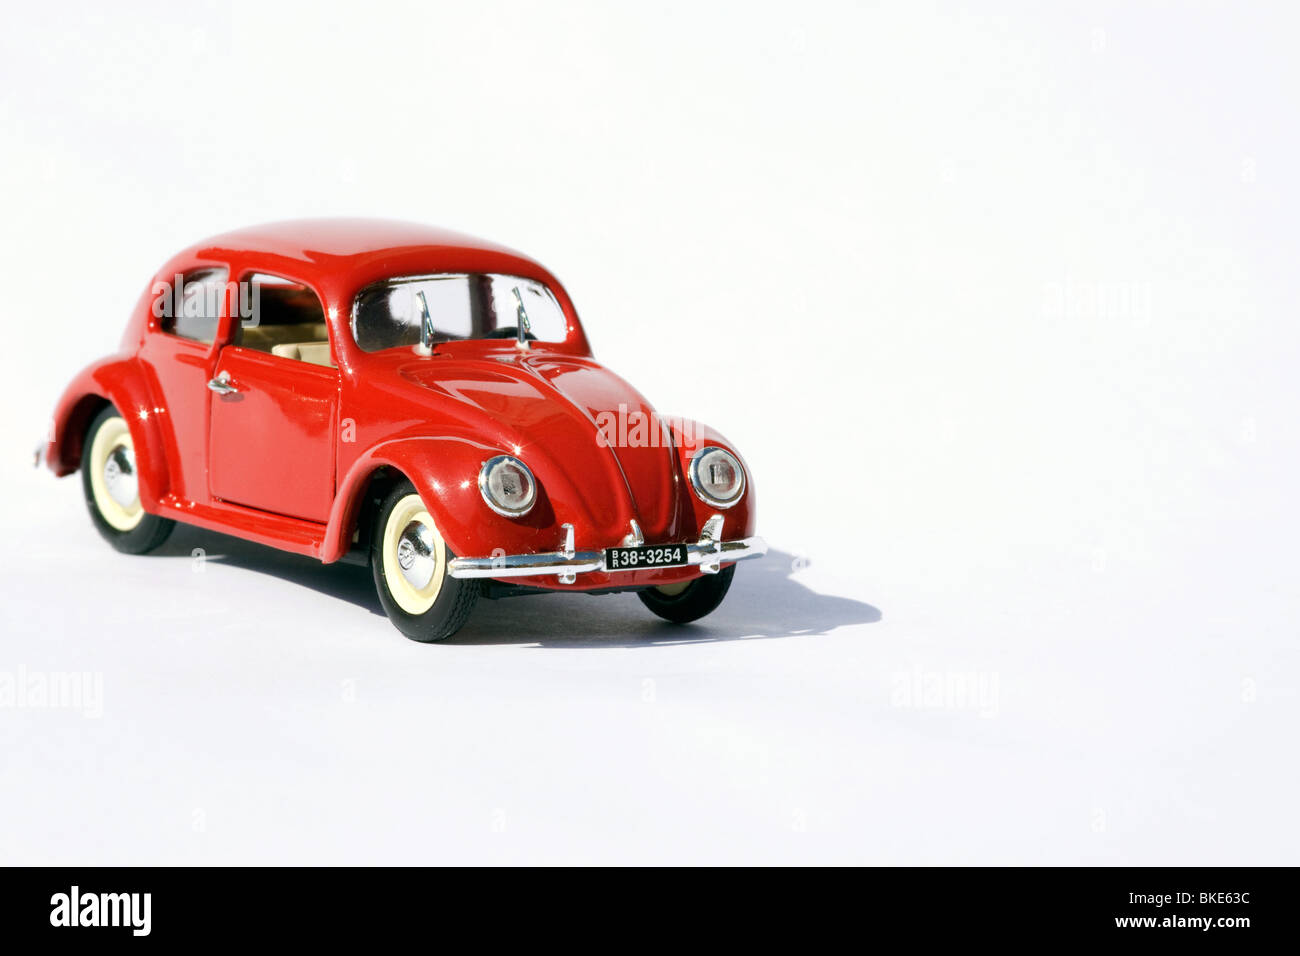 Collectible die cast toy model of a volkswagen beetle on white background - Stock Image